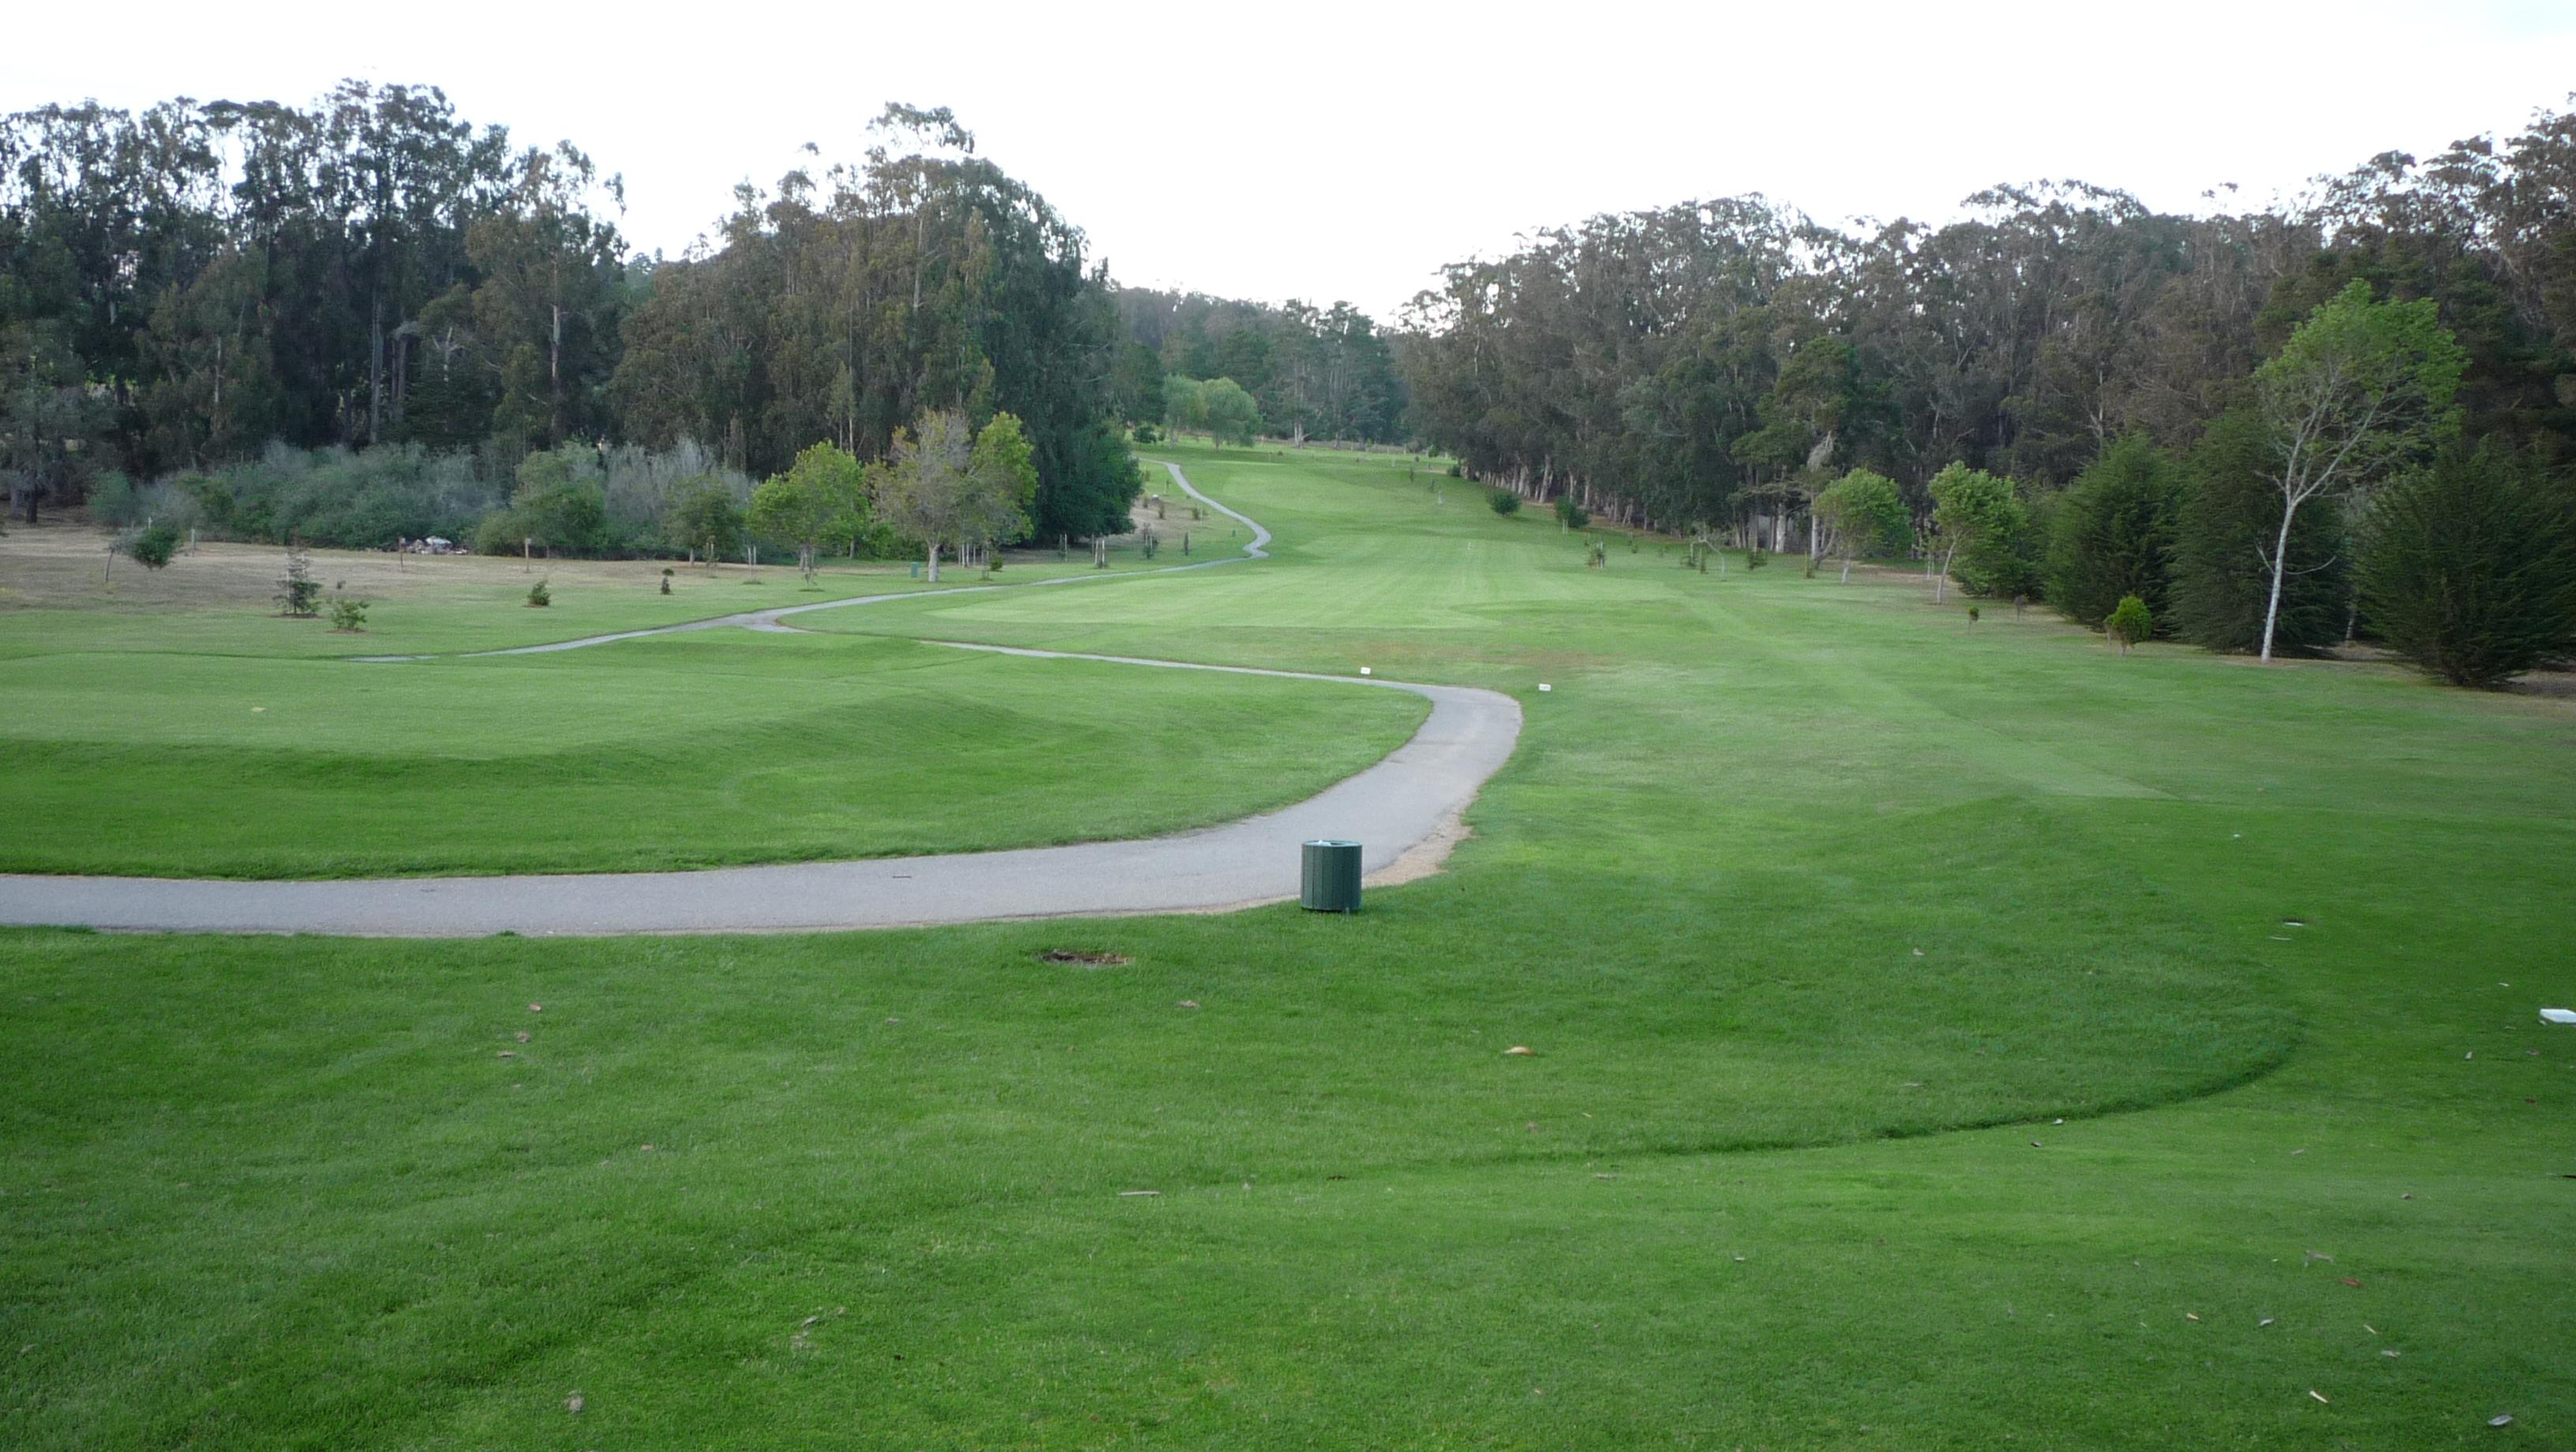 The golf course.